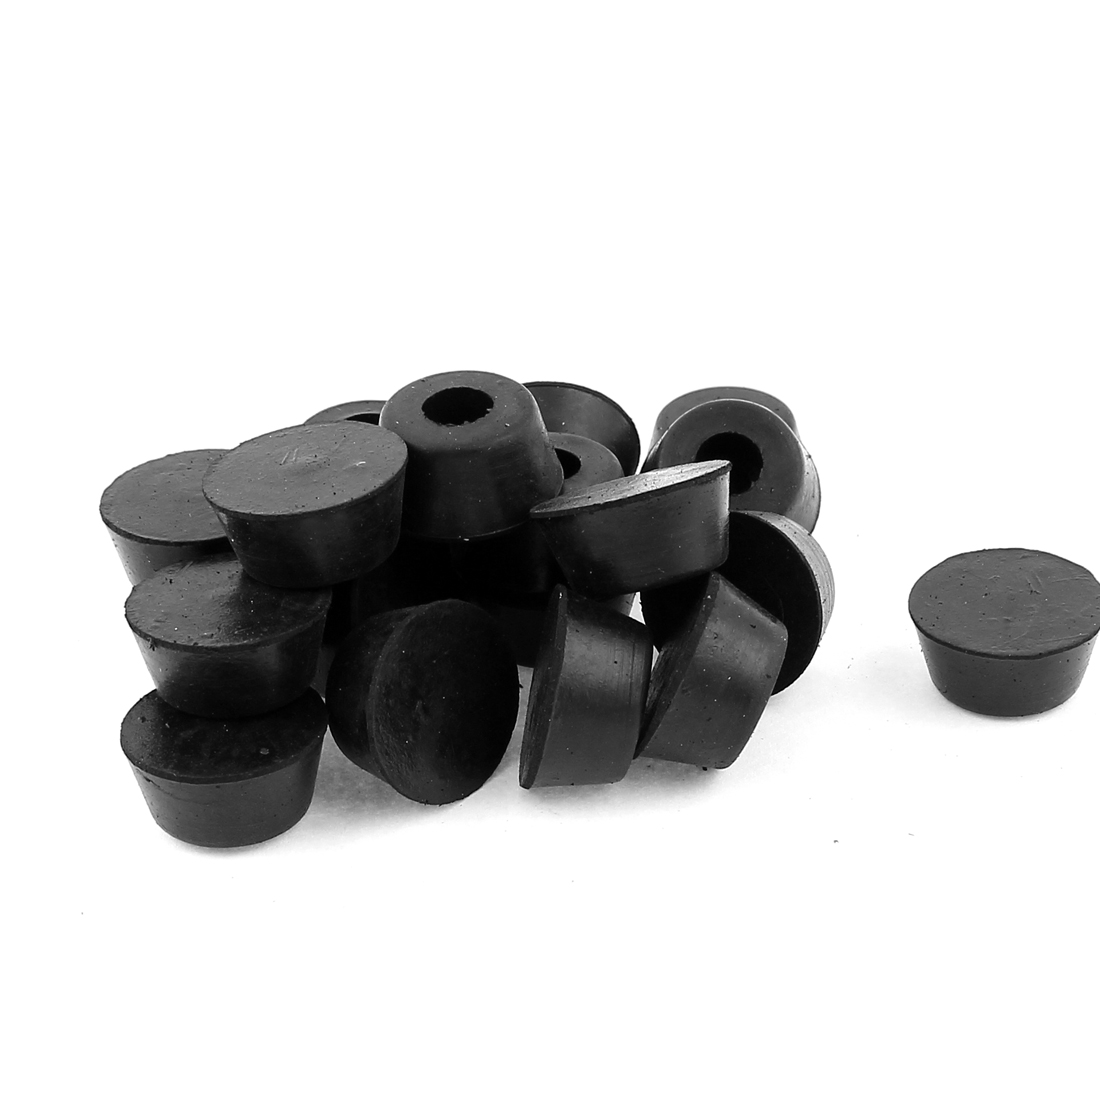 Rubber Furniture Table Chair Leg Tip Protector Bumpers 8mm Dia 20pcs